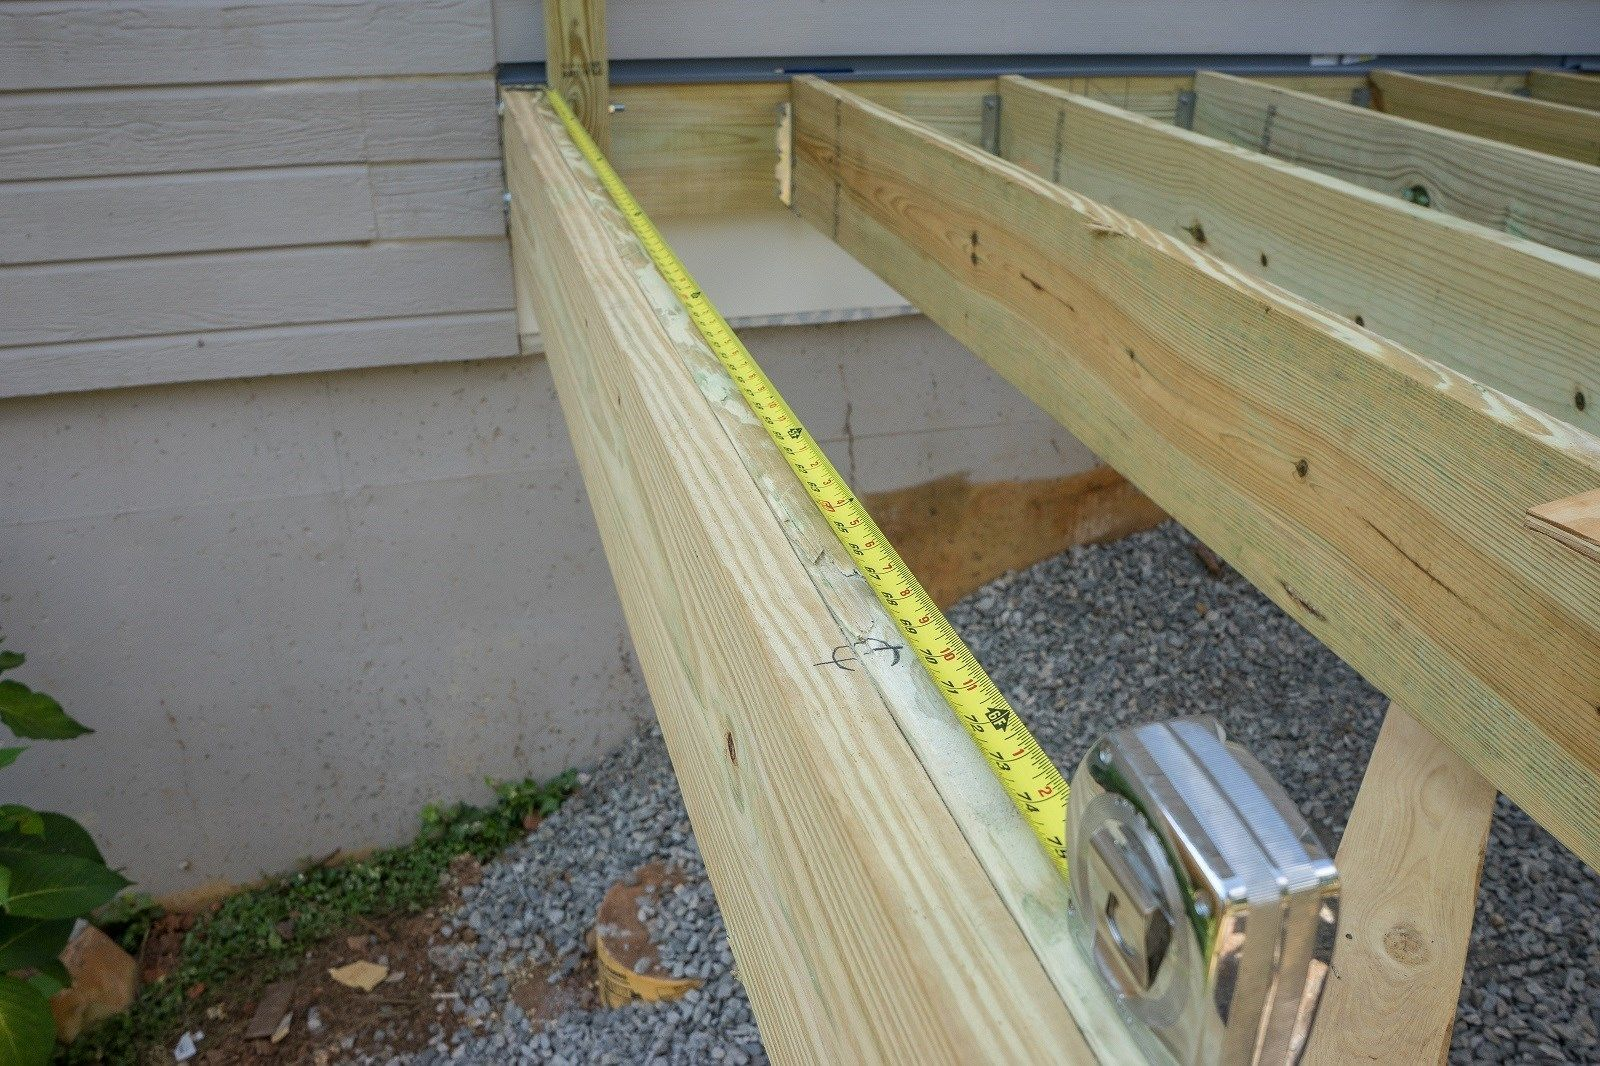 How to install a deck railing - Mark Rail Post Centers